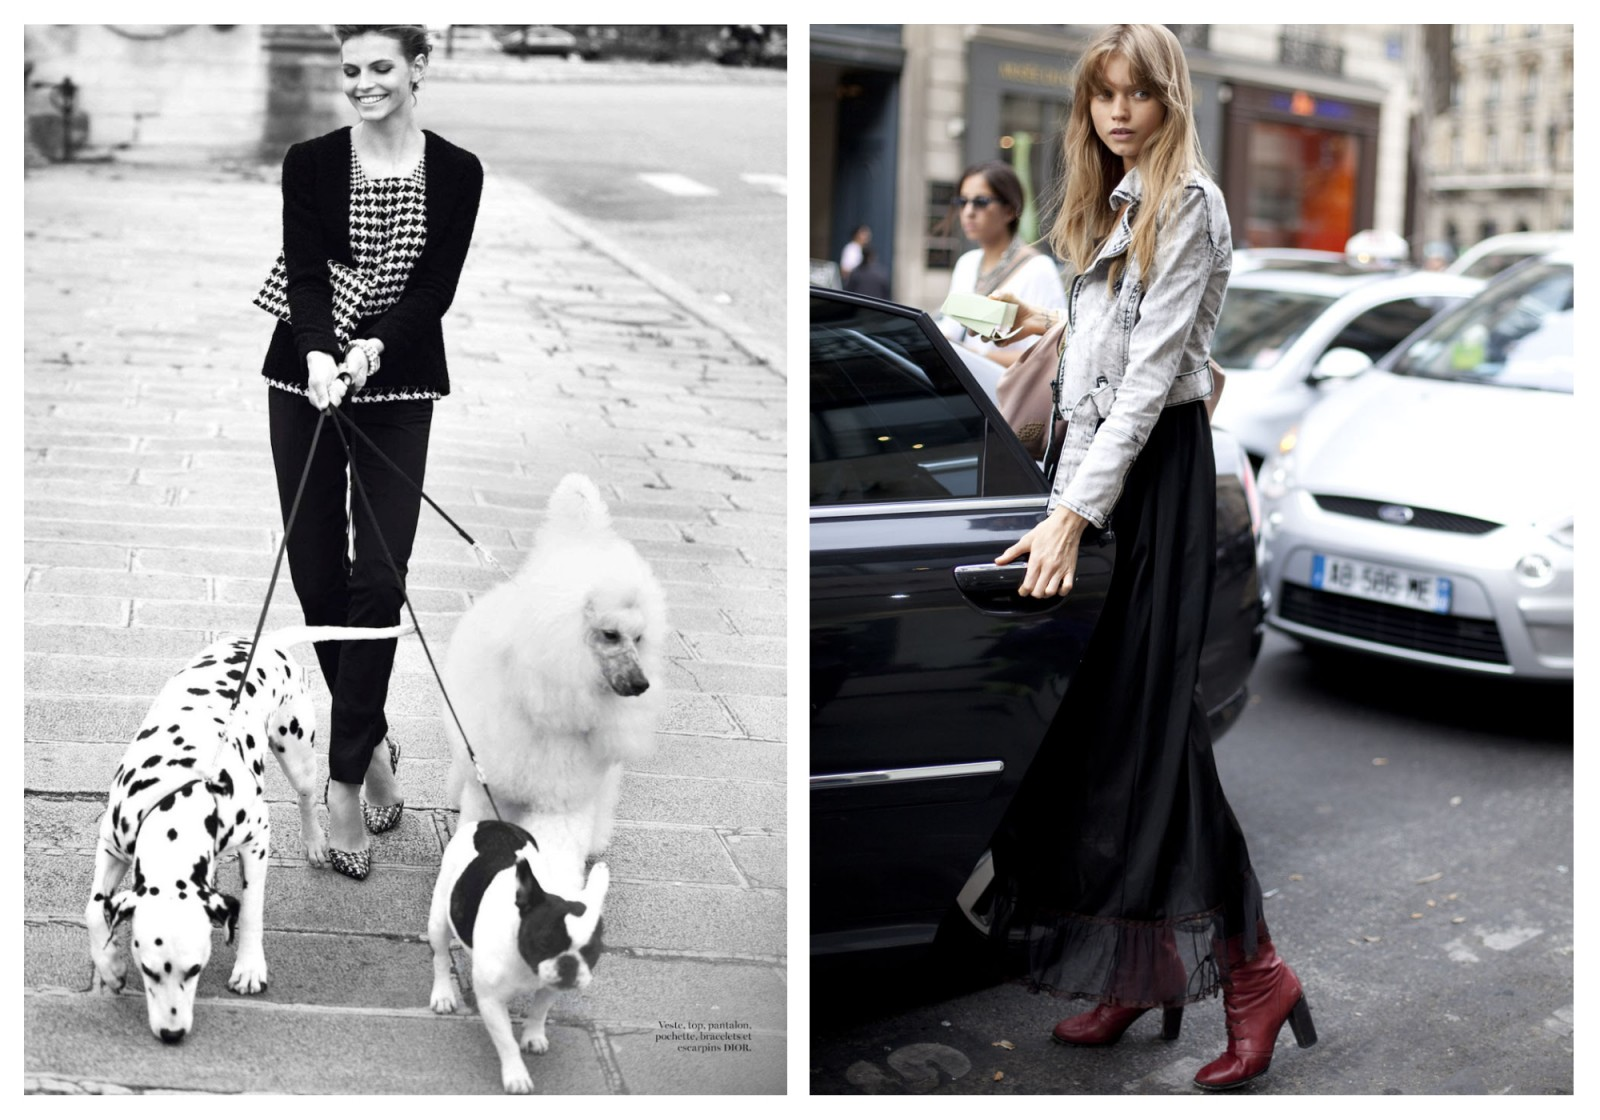 French Chic is all about decoding the Secrets of Paris Fashion, like this woman whose attire matches her three dogs as she walks them, smiling (left). Parisian woman aren't afraid to add a touch of fun like a red leather boot (right).